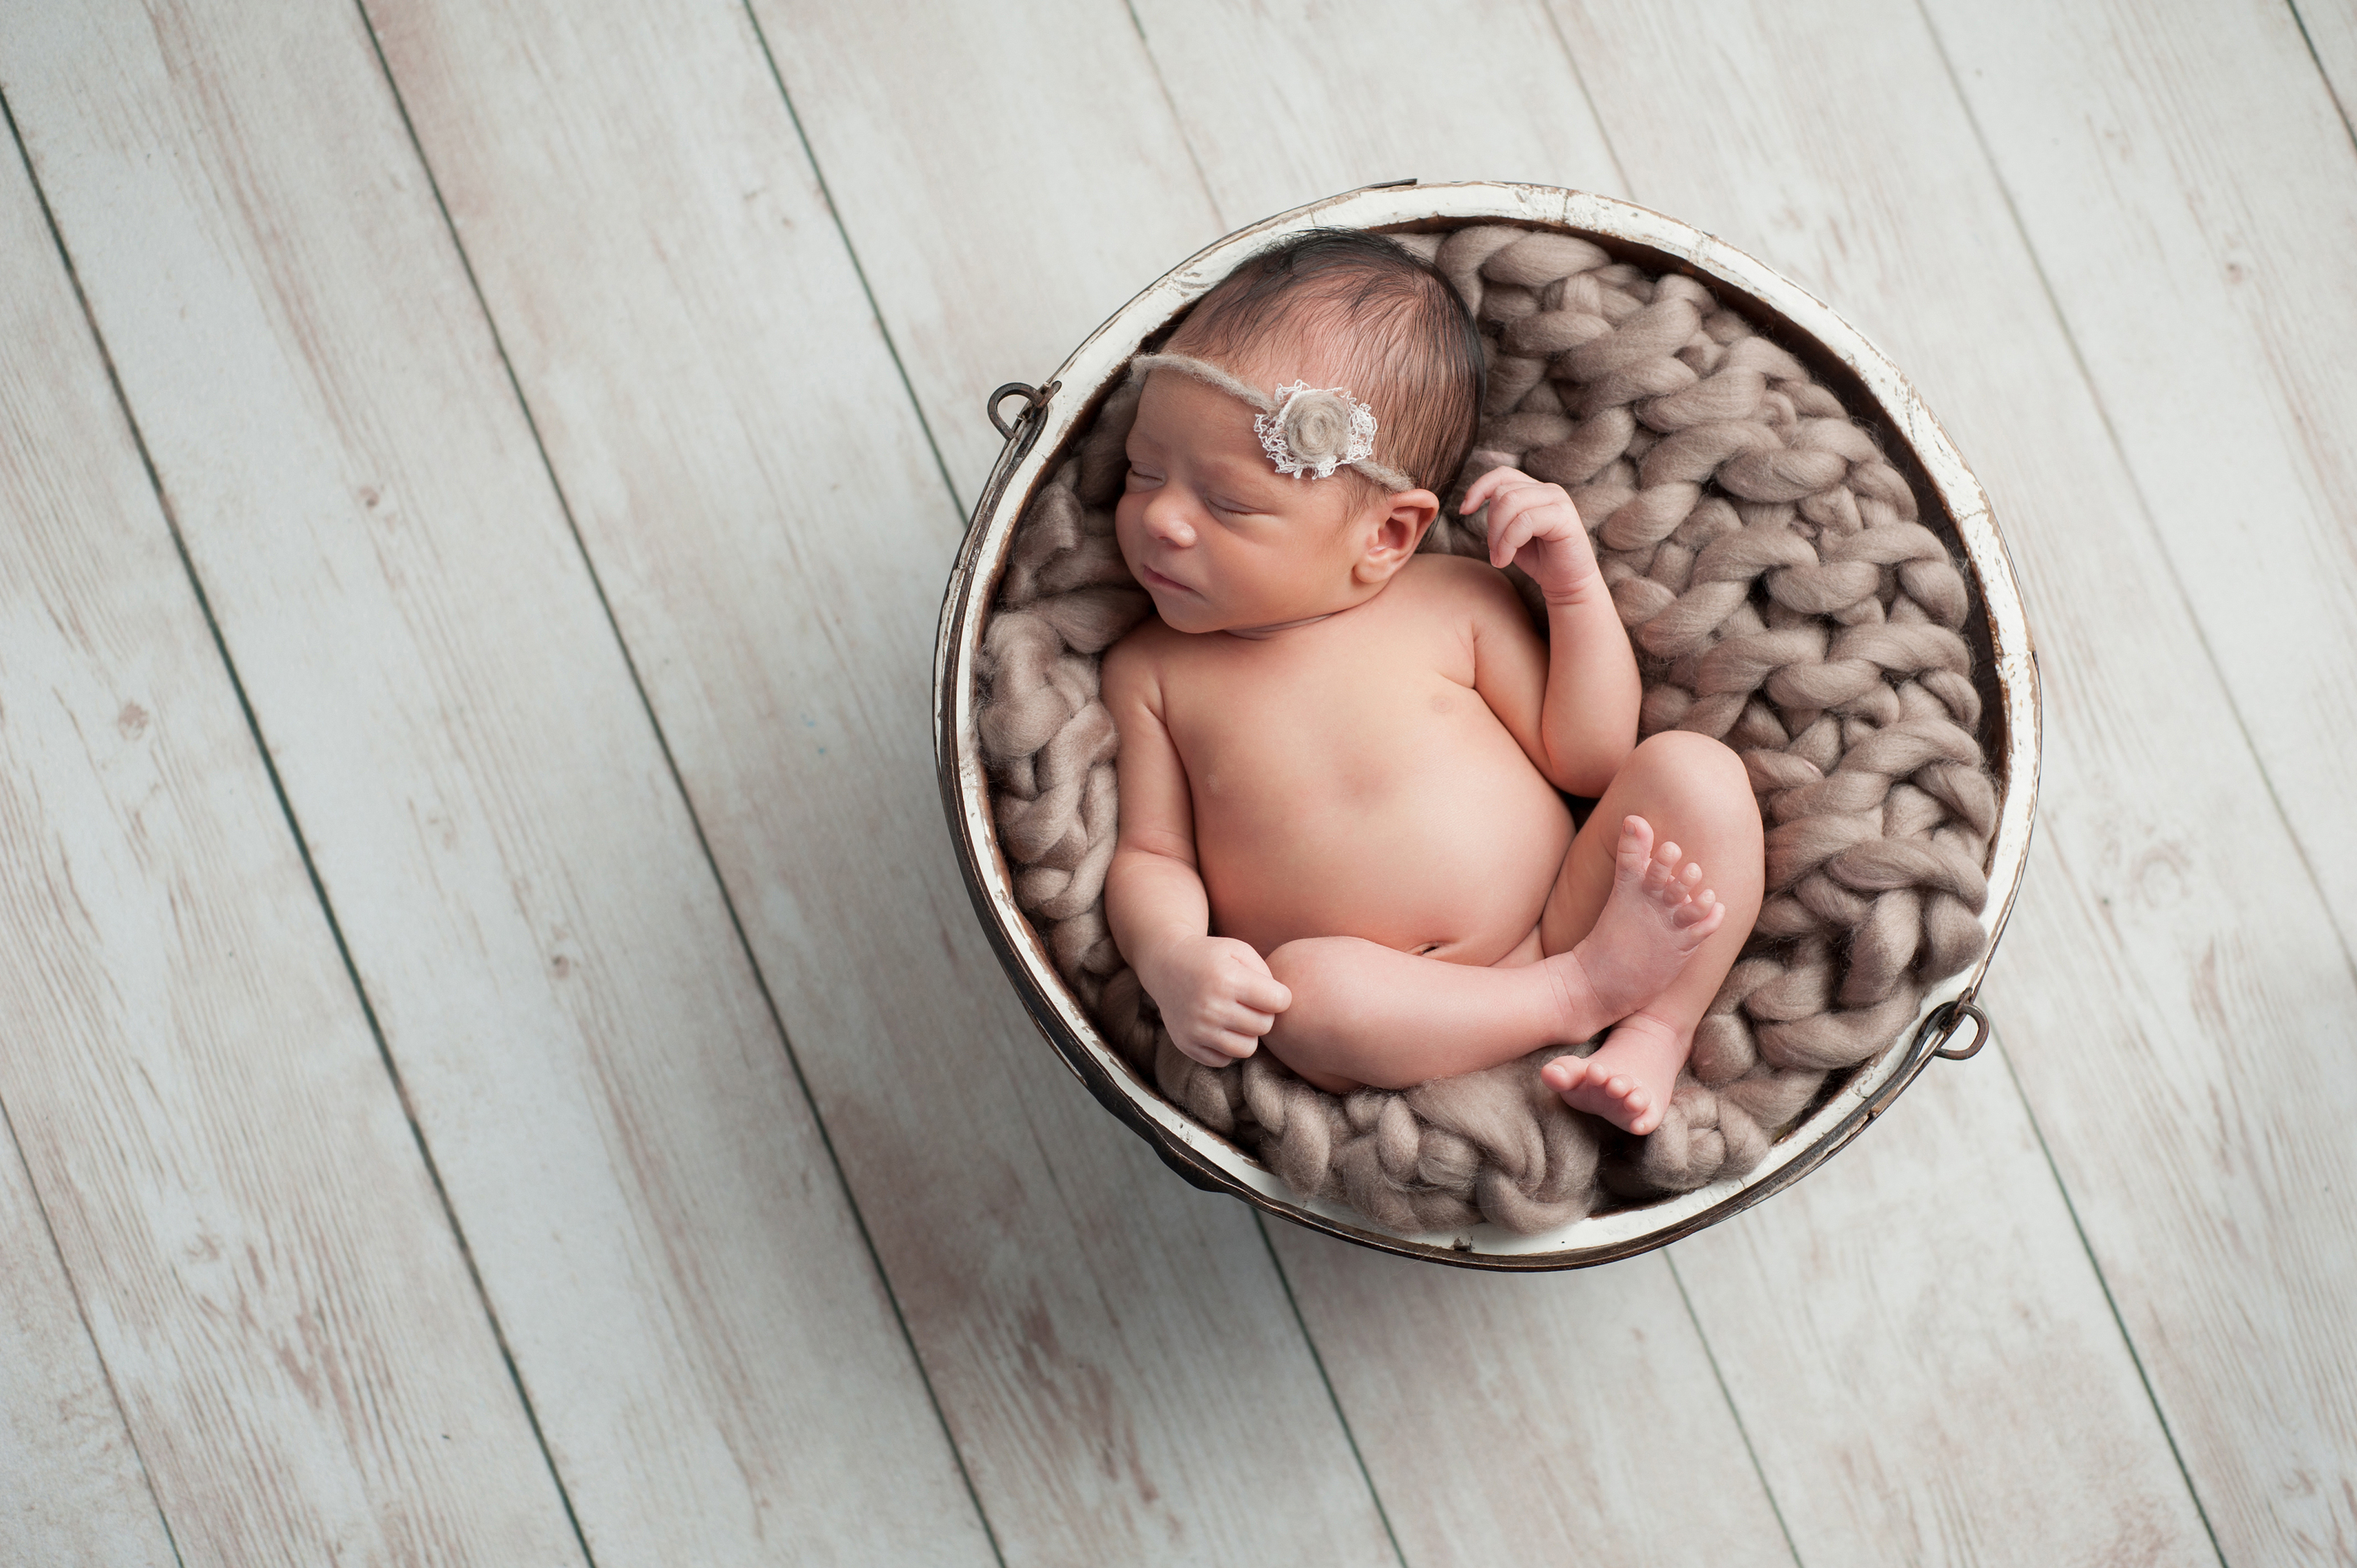 Newborn Girl Sleeping In Wooden Bowl